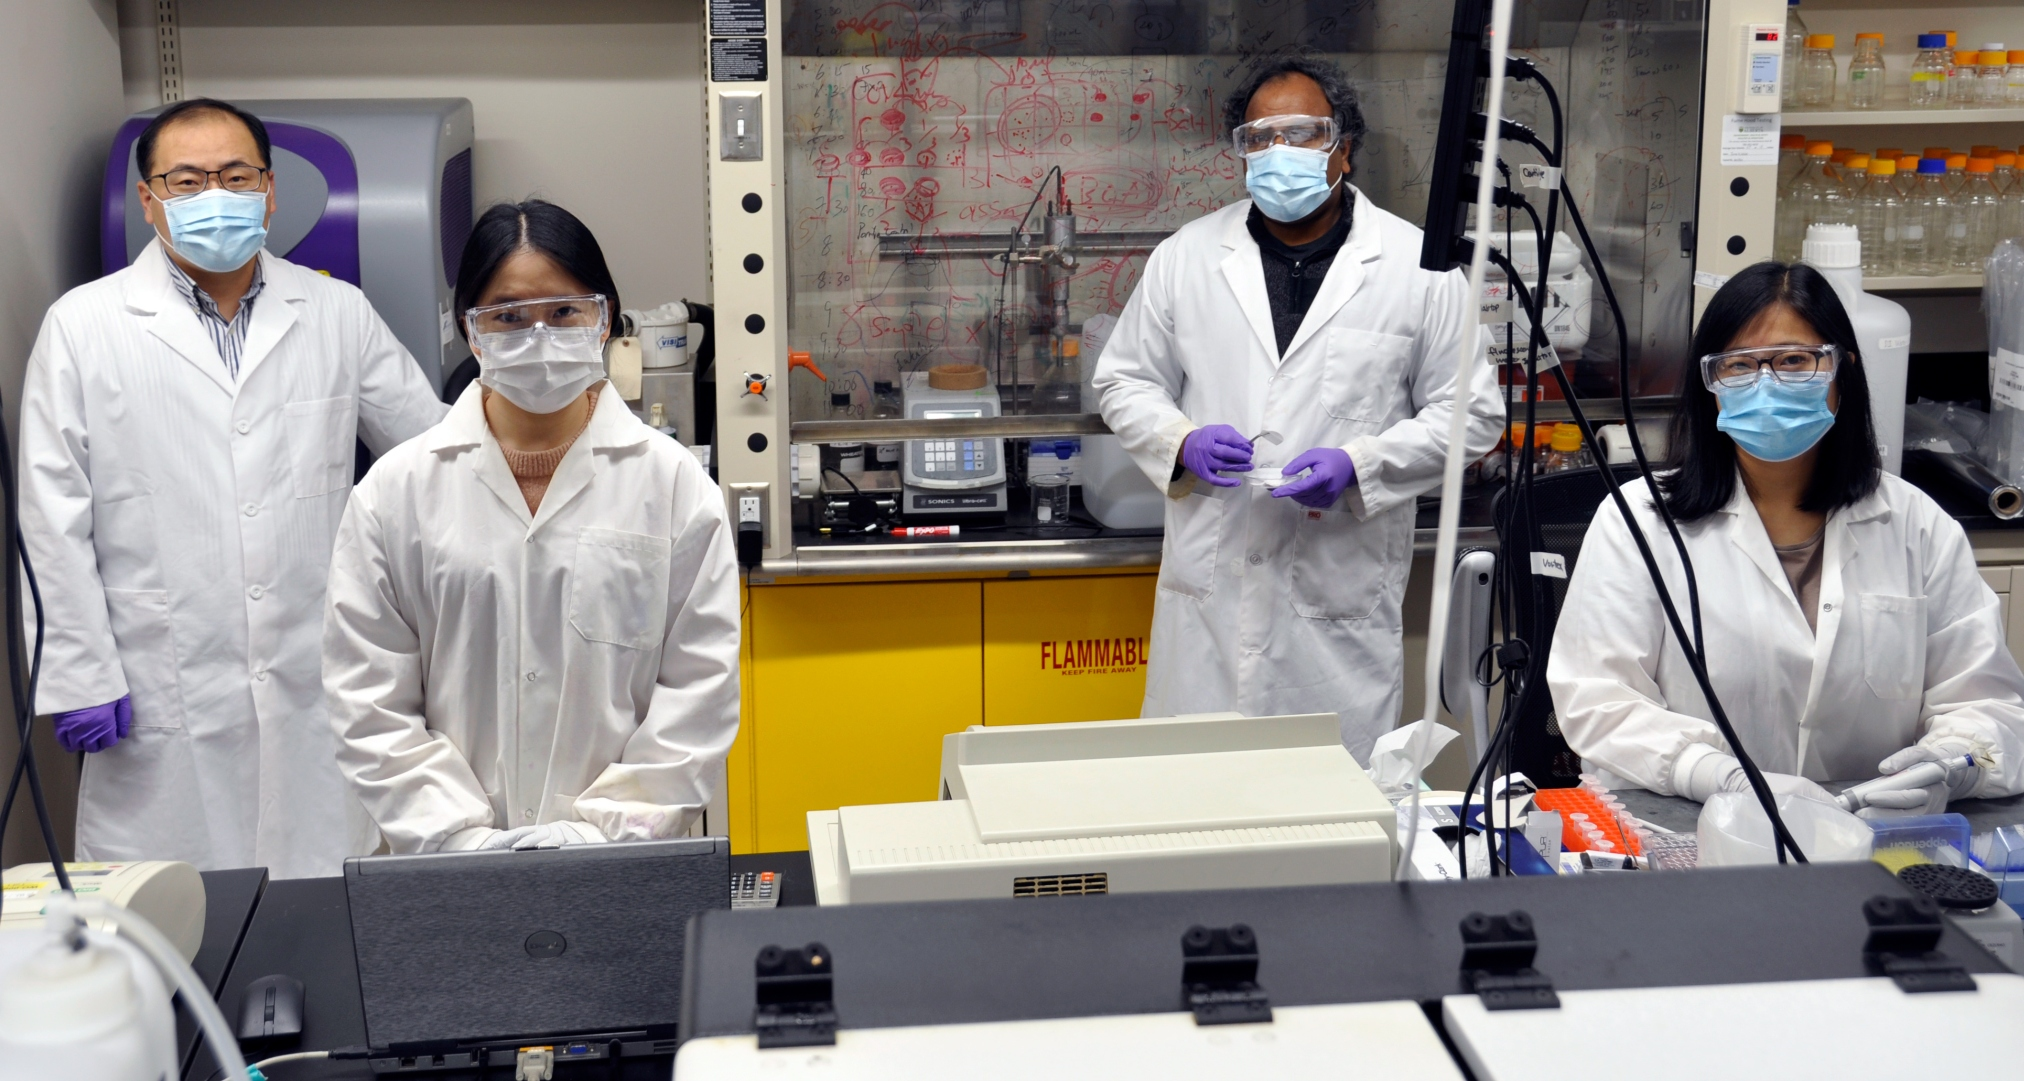 U of A engineering researcher Hyo Jick-Choi (left) and his lab team will focus on manufacturing prototype salt-coated masks and respirators, or a salt-coated filter that is easy to produce and reusable. (Photo: Michael Brown)